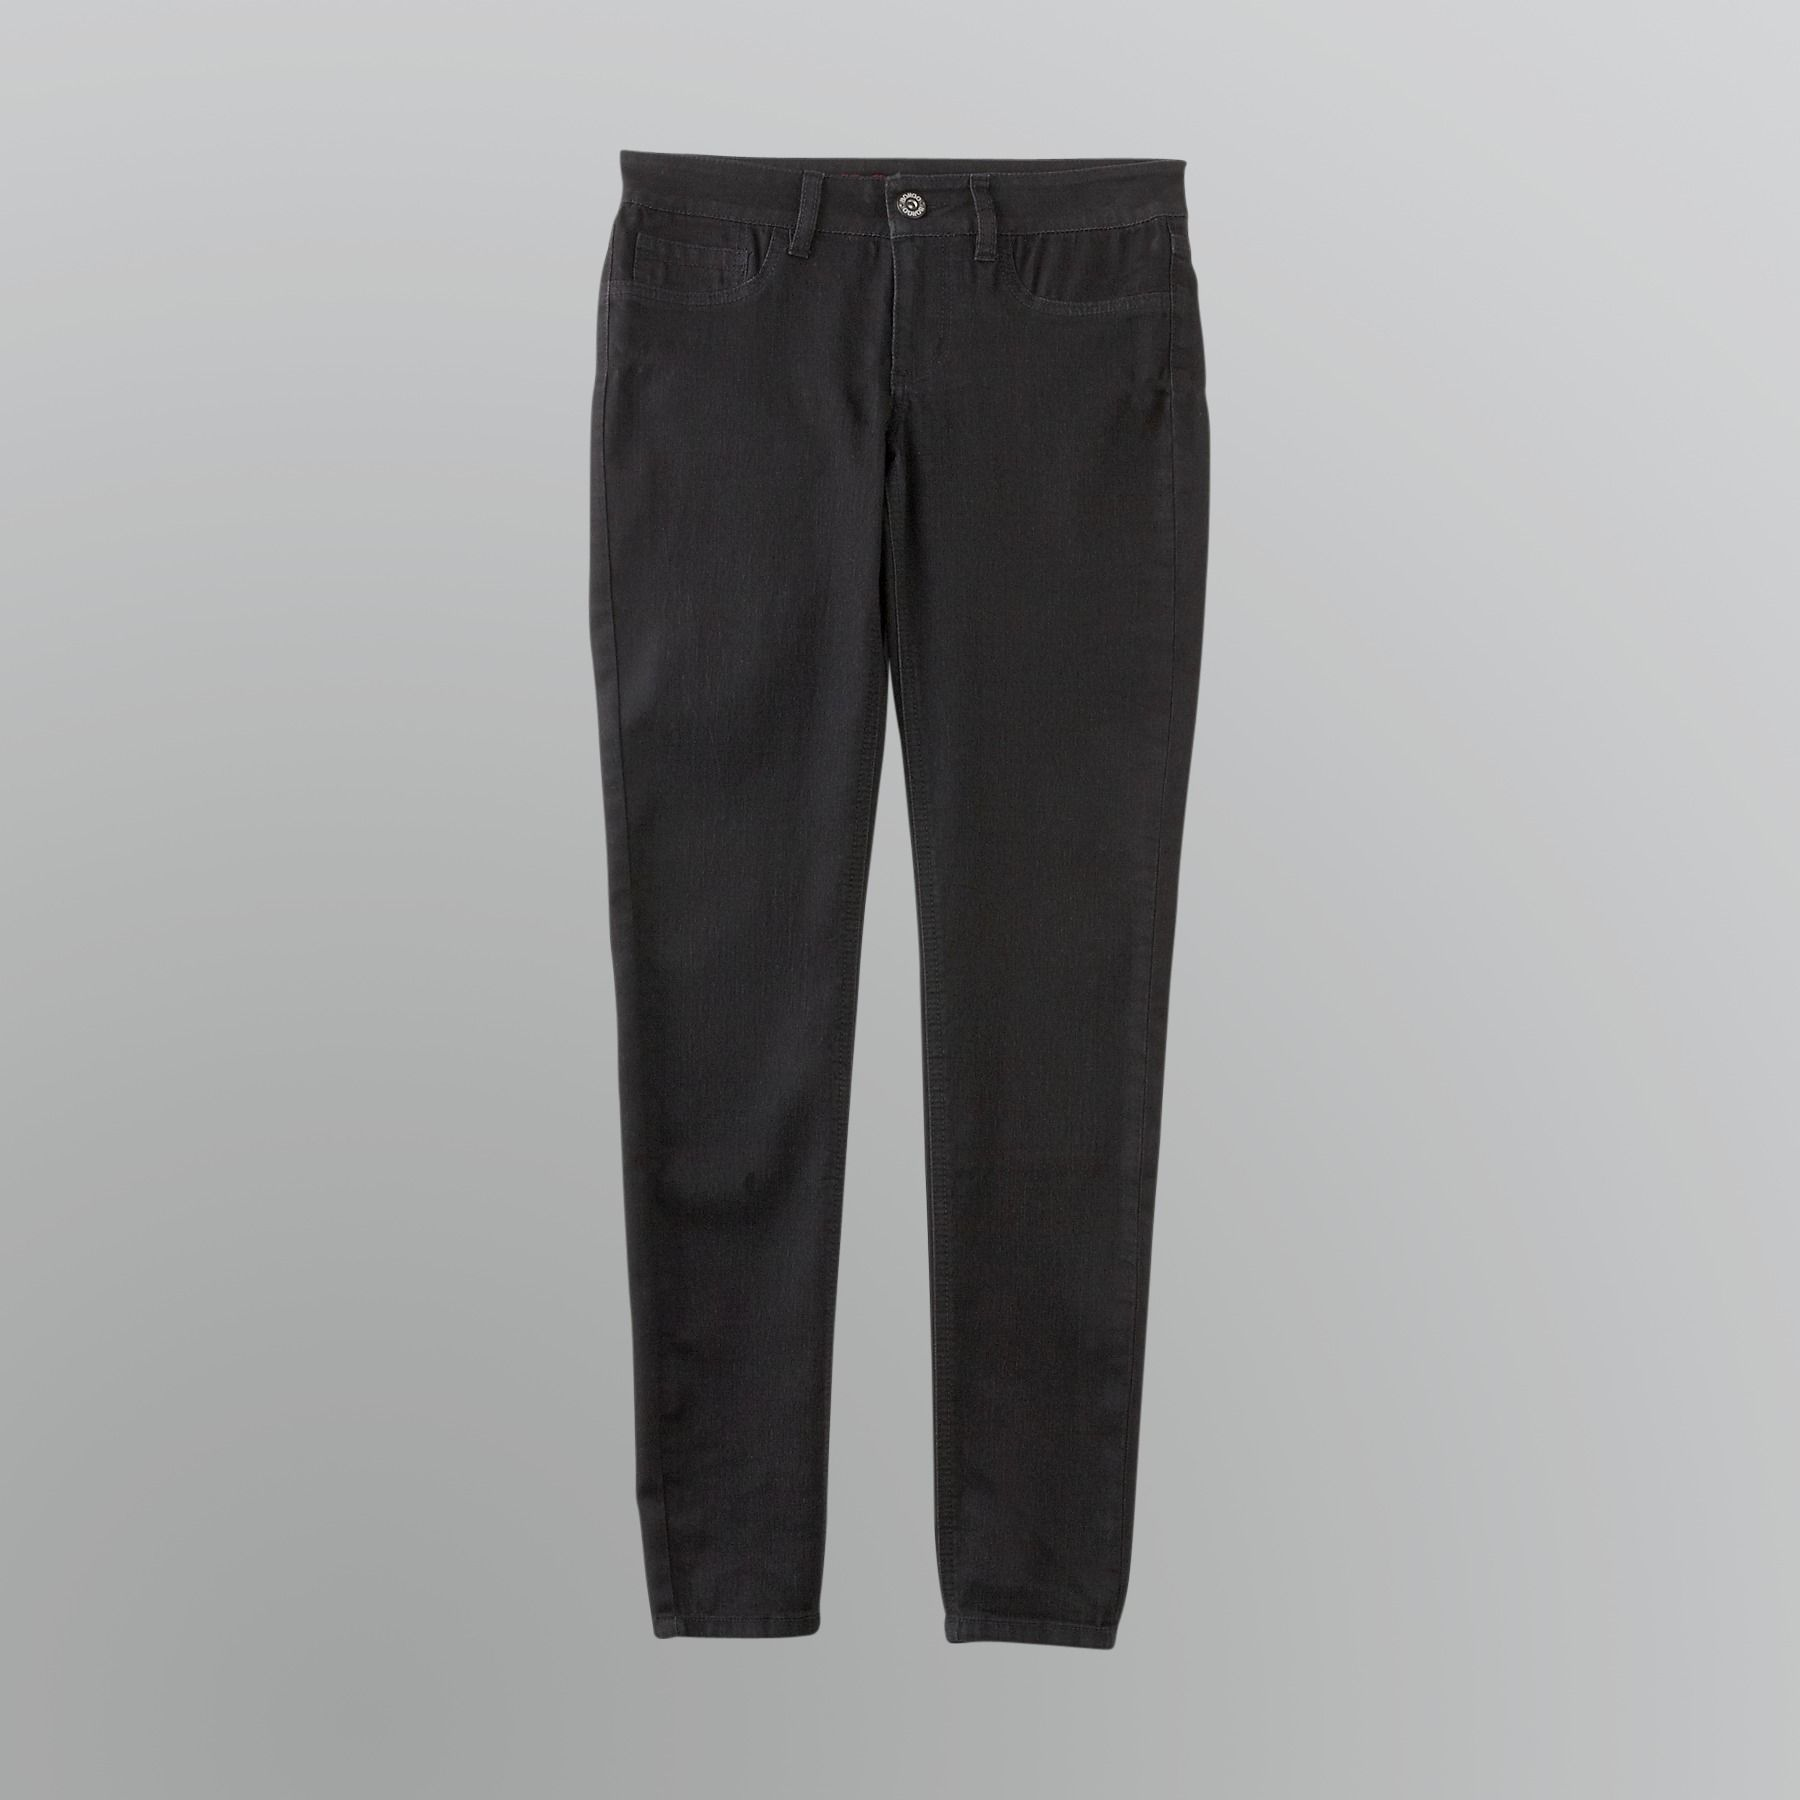 Bongo Junior's Black Wash Skinny Jeans at Sears.com